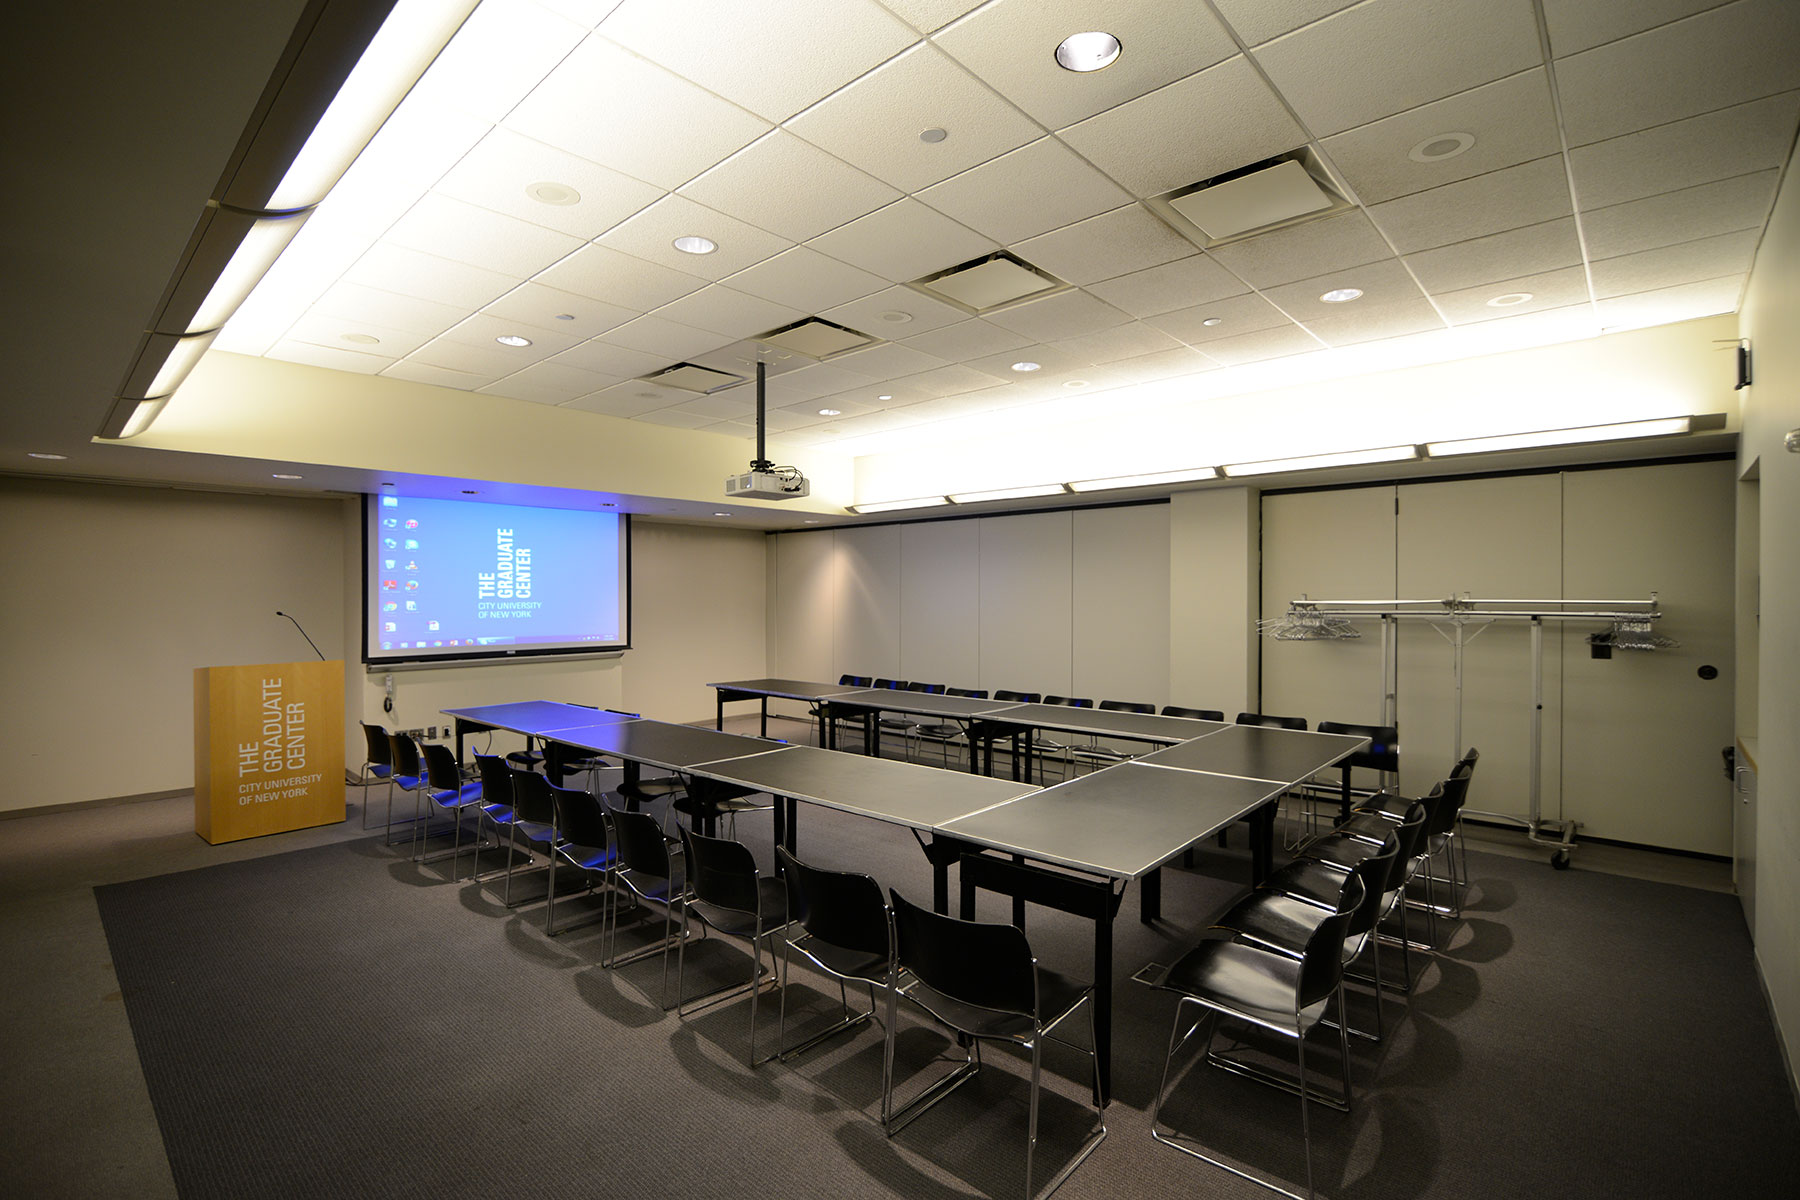 9th Floor Conference Room Suite - Meeting Space in NYC. Room set up for a class or meeting - U-shaped desks.